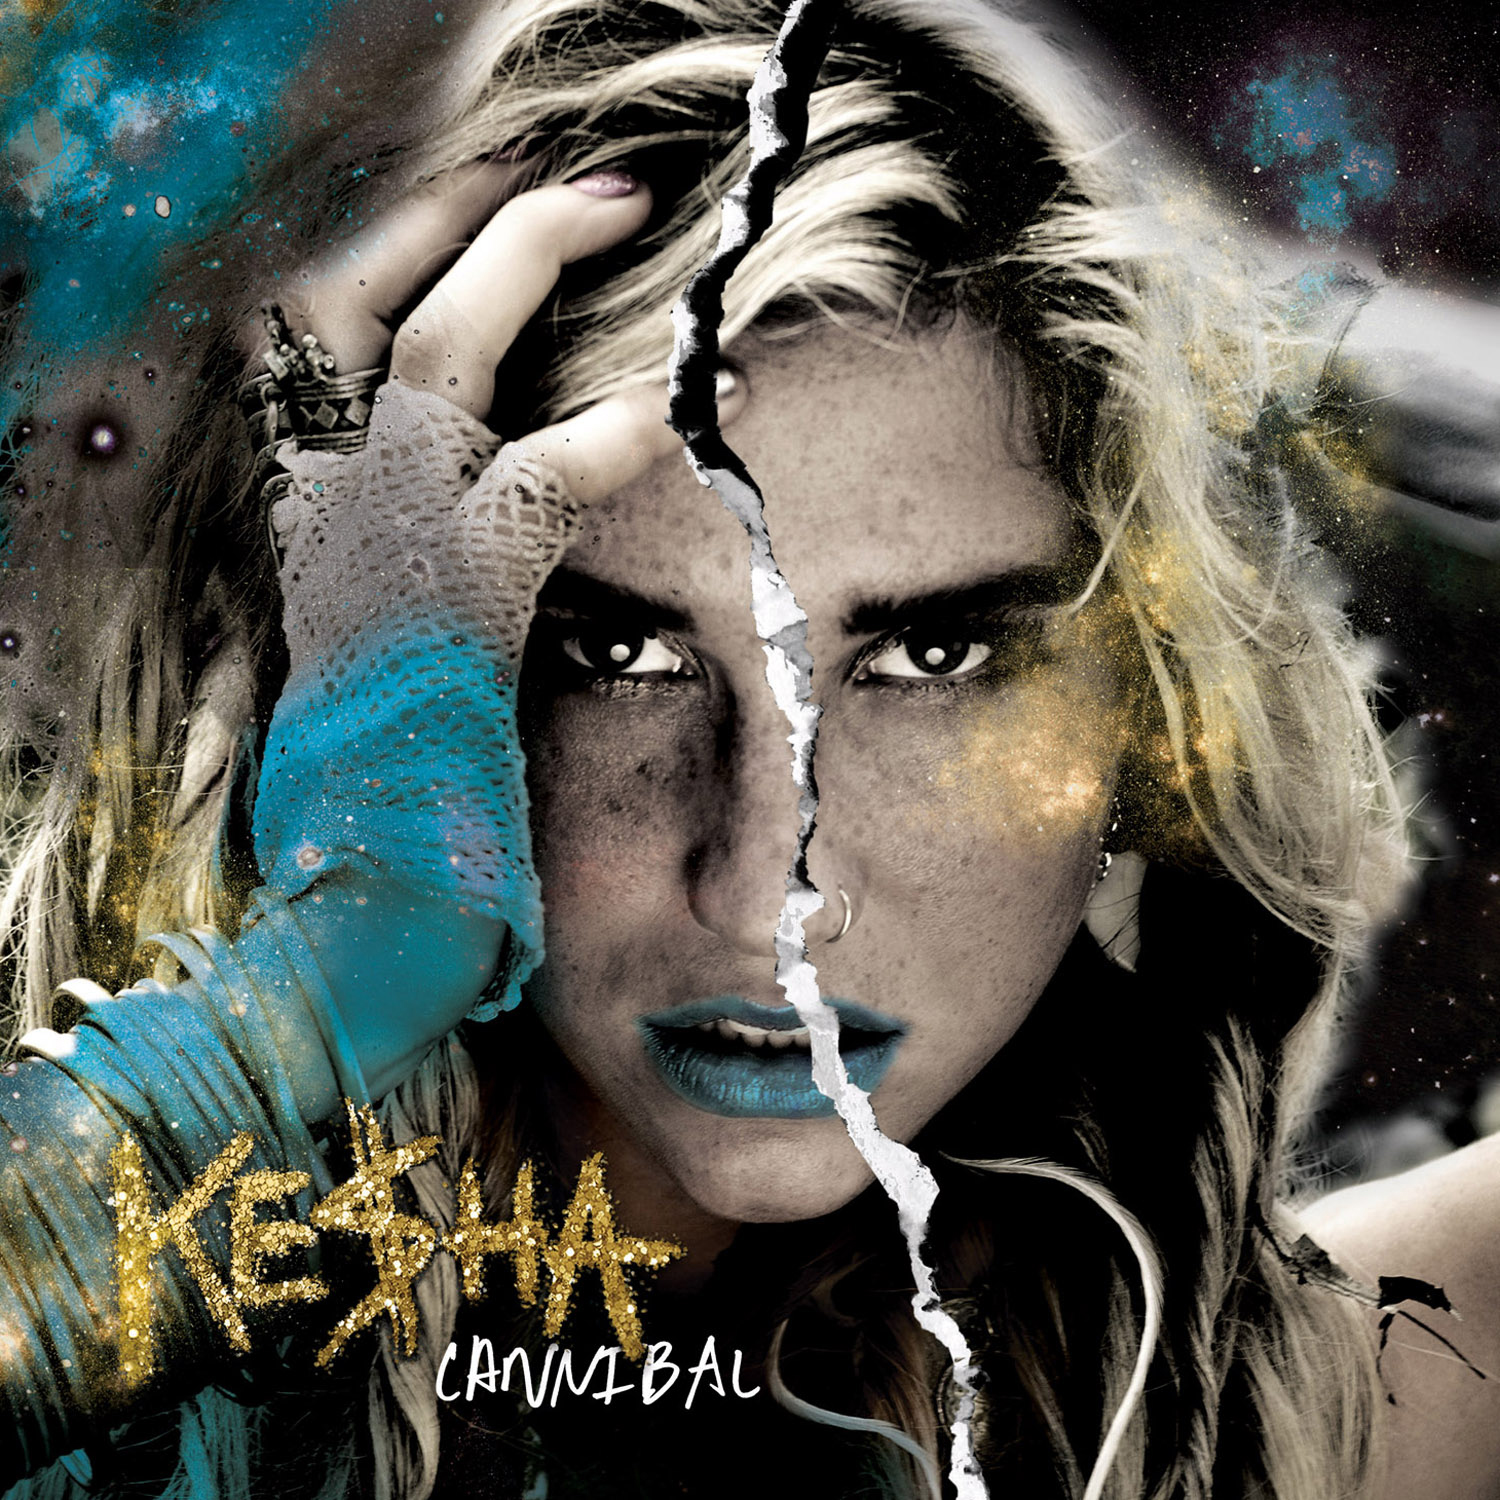 Cannibal Kesha